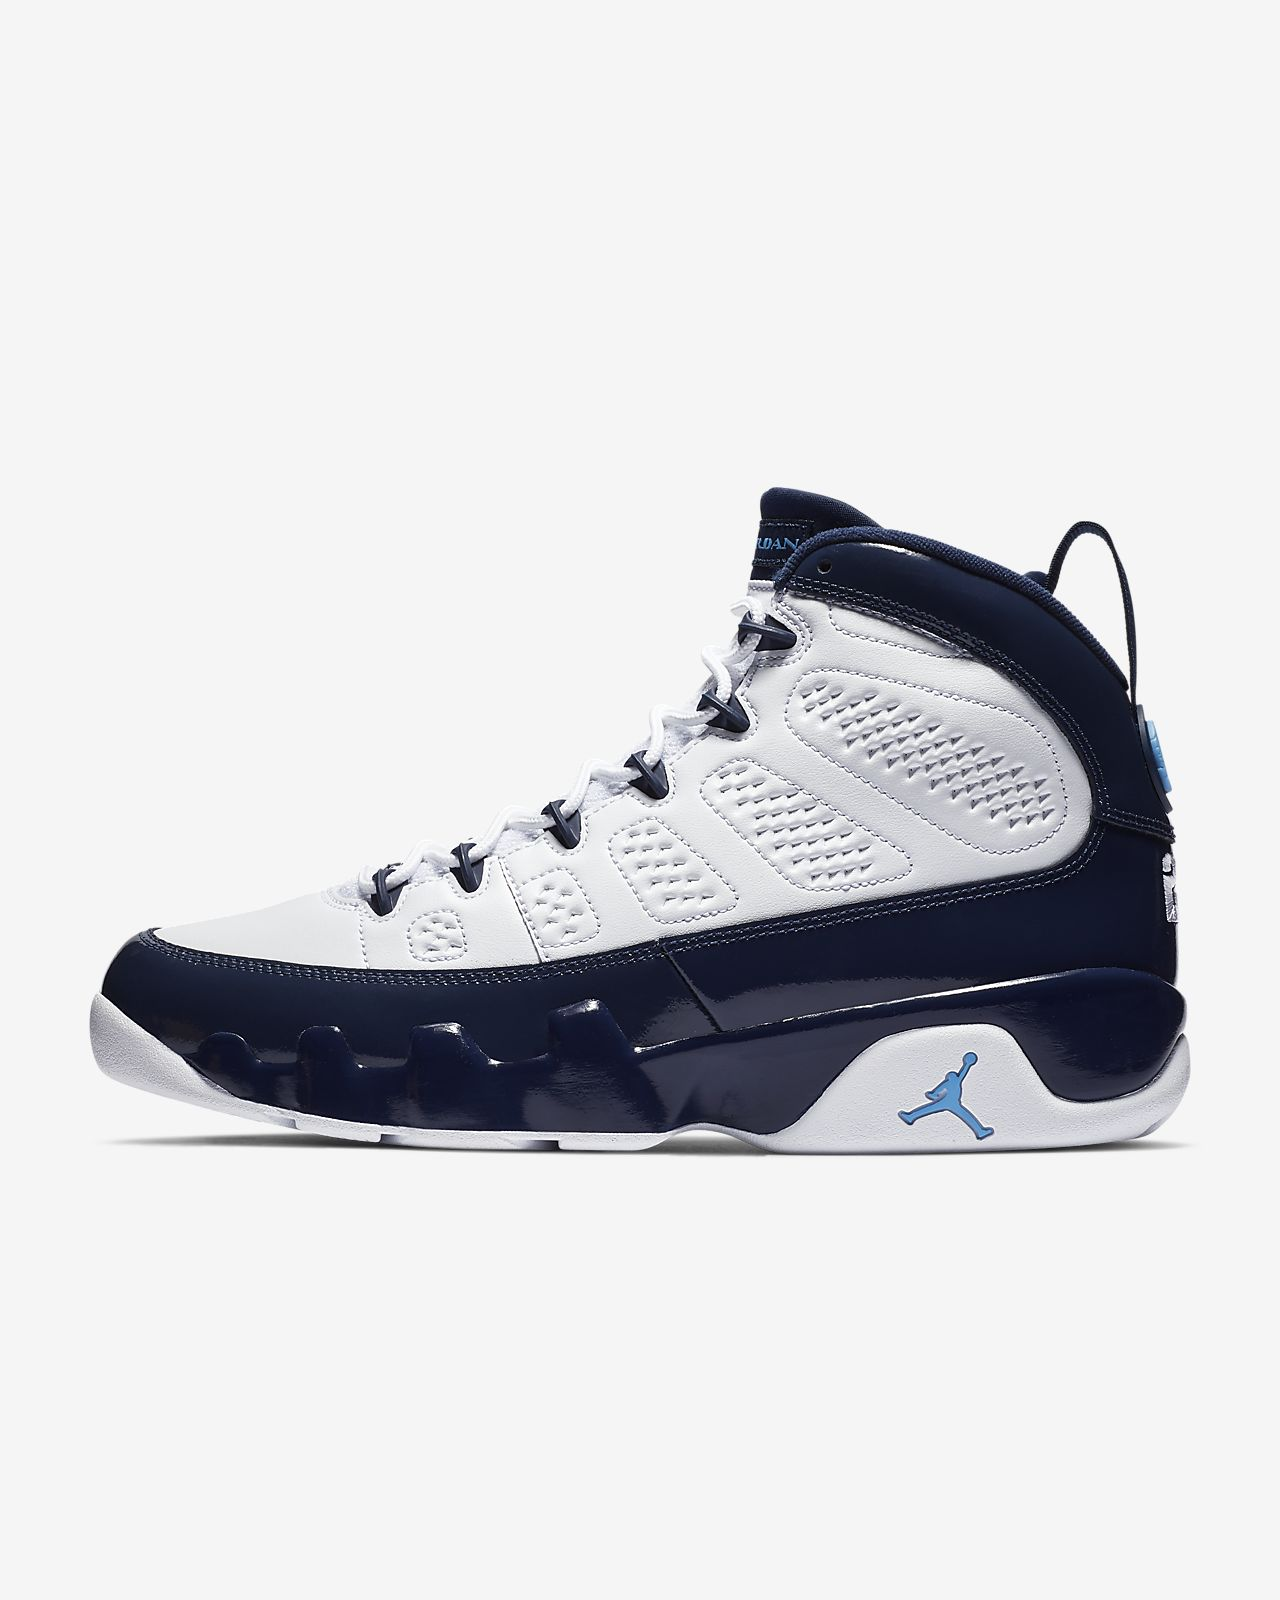 outlet store 8deed 86381 Air Jordan 9 Retro